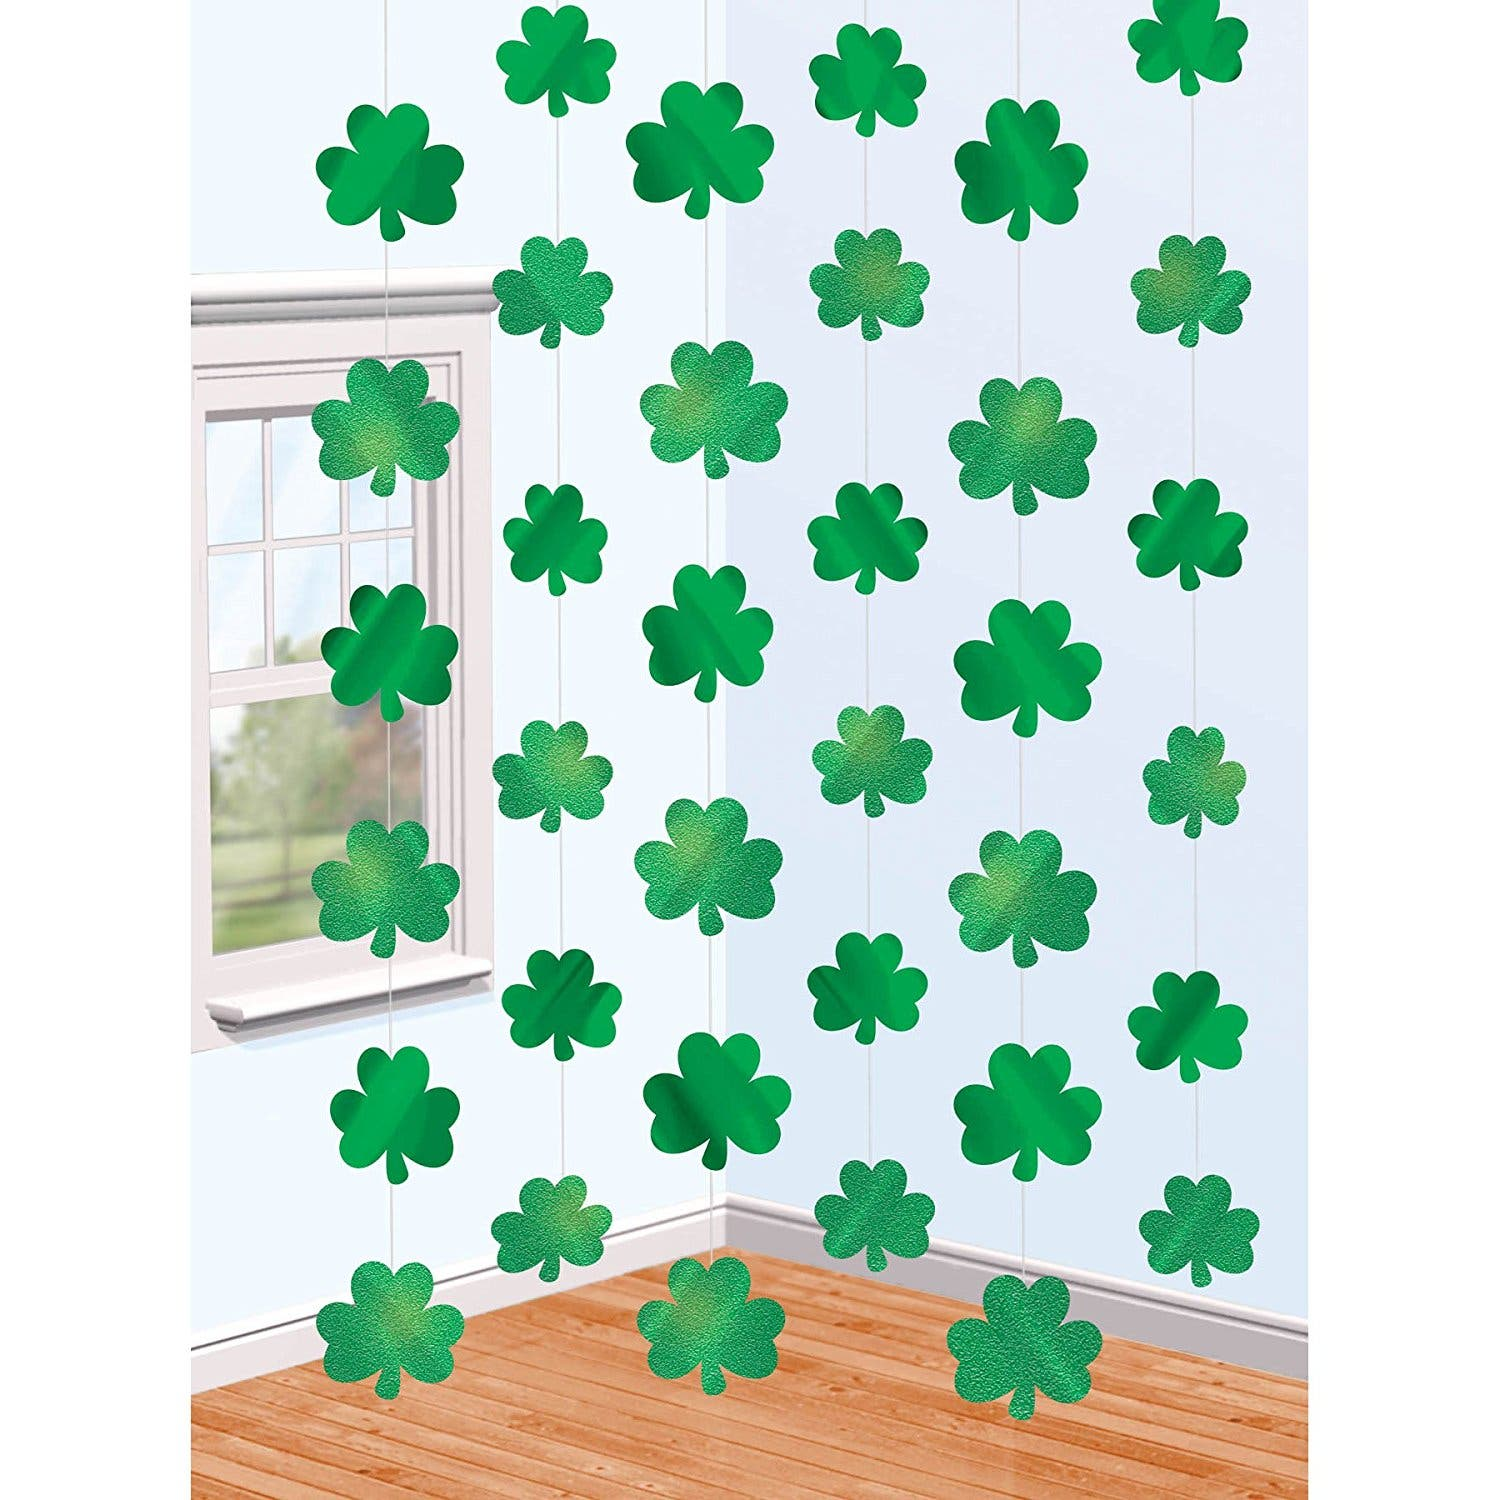 b6b4d99d869 21 St. Patrick s Day Party Must-Haves